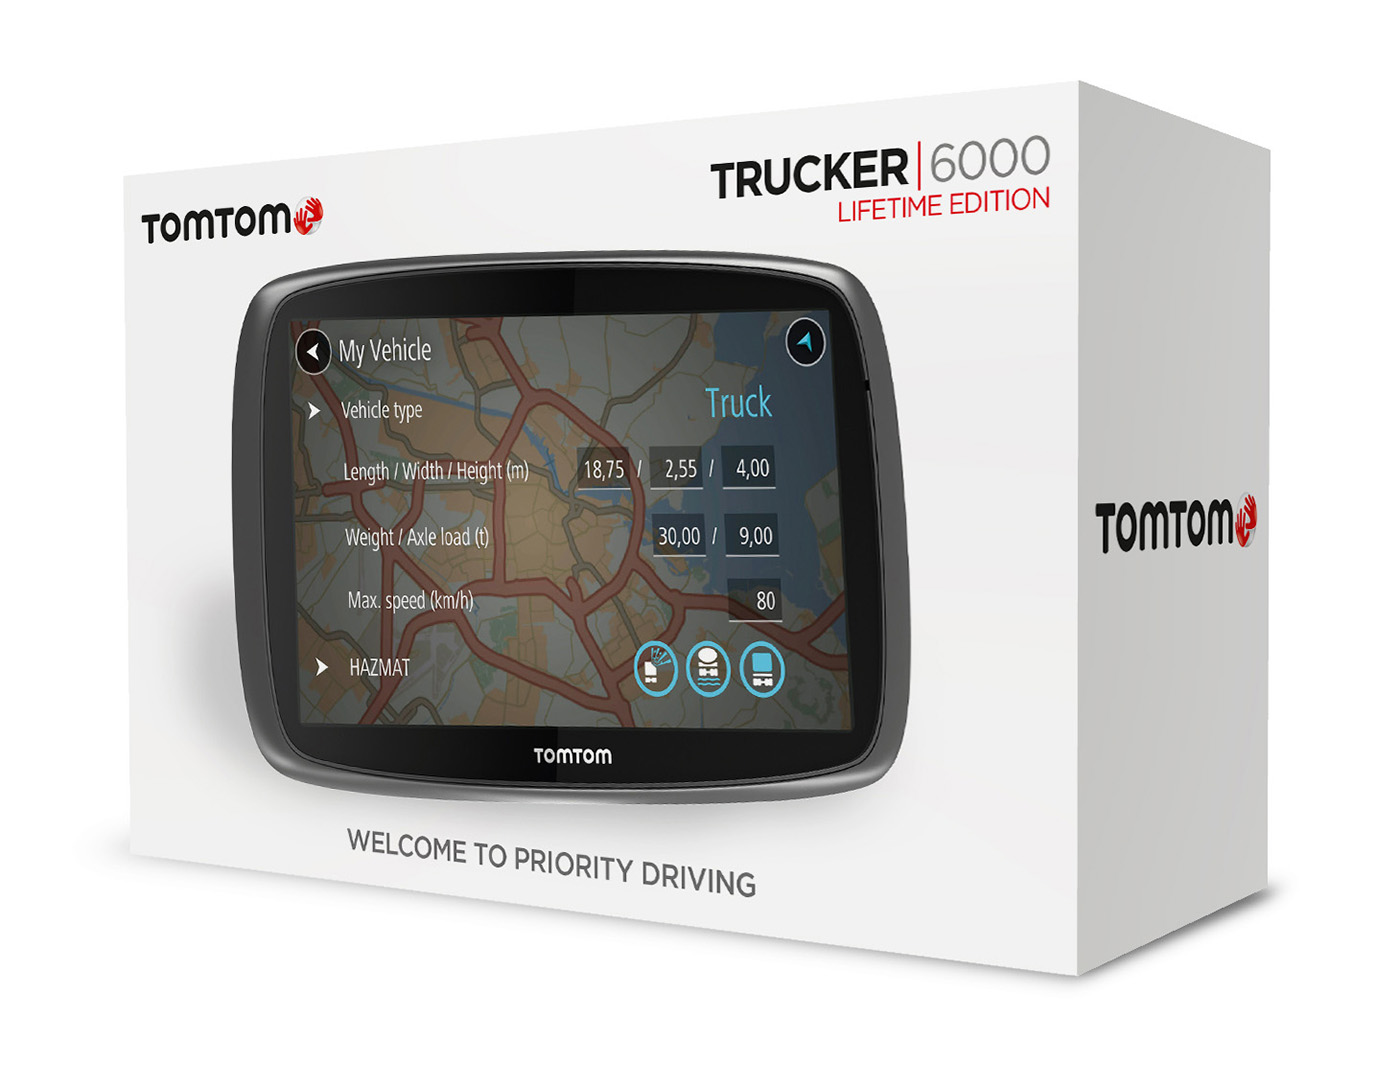 tomtom trucker 6000 gps satnav free lifetime uk eu maps live traffic cameras sustuu. Black Bedroom Furniture Sets. Home Design Ideas